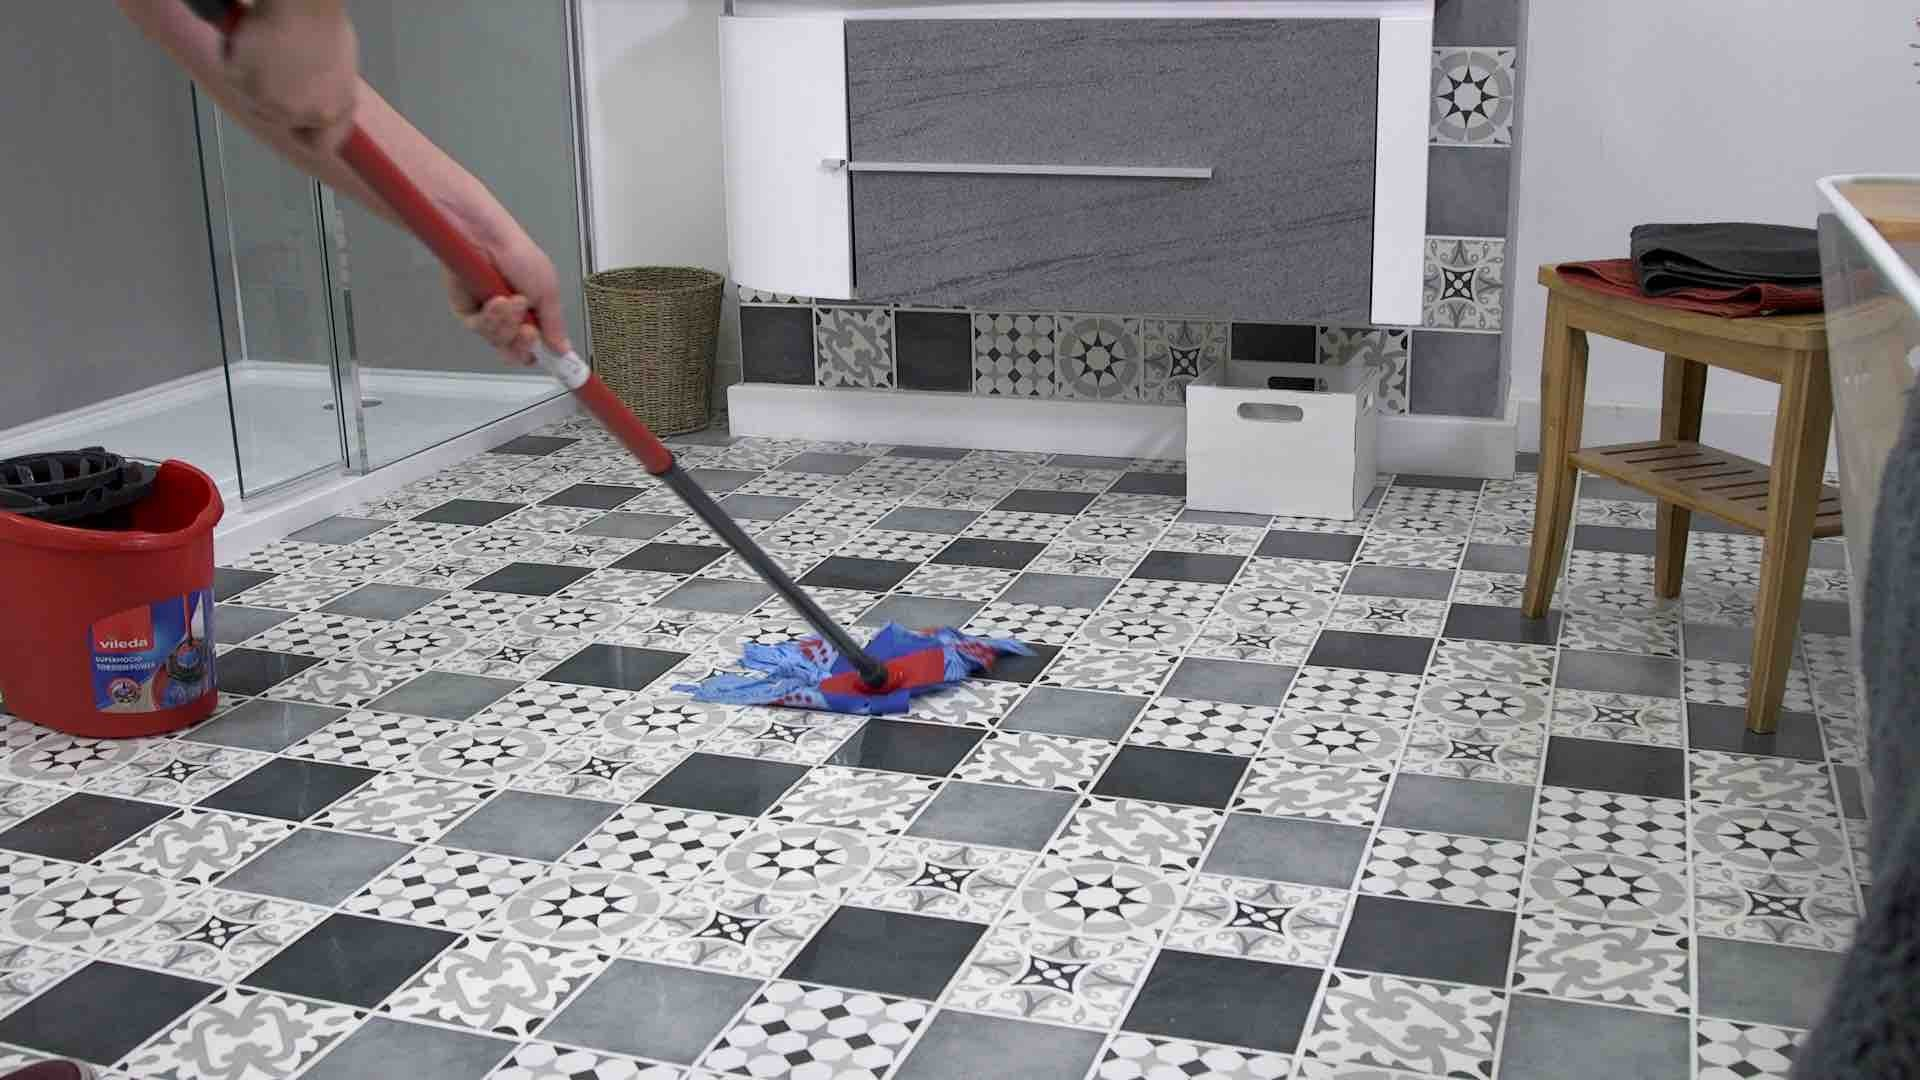 Mopping your floor tiles